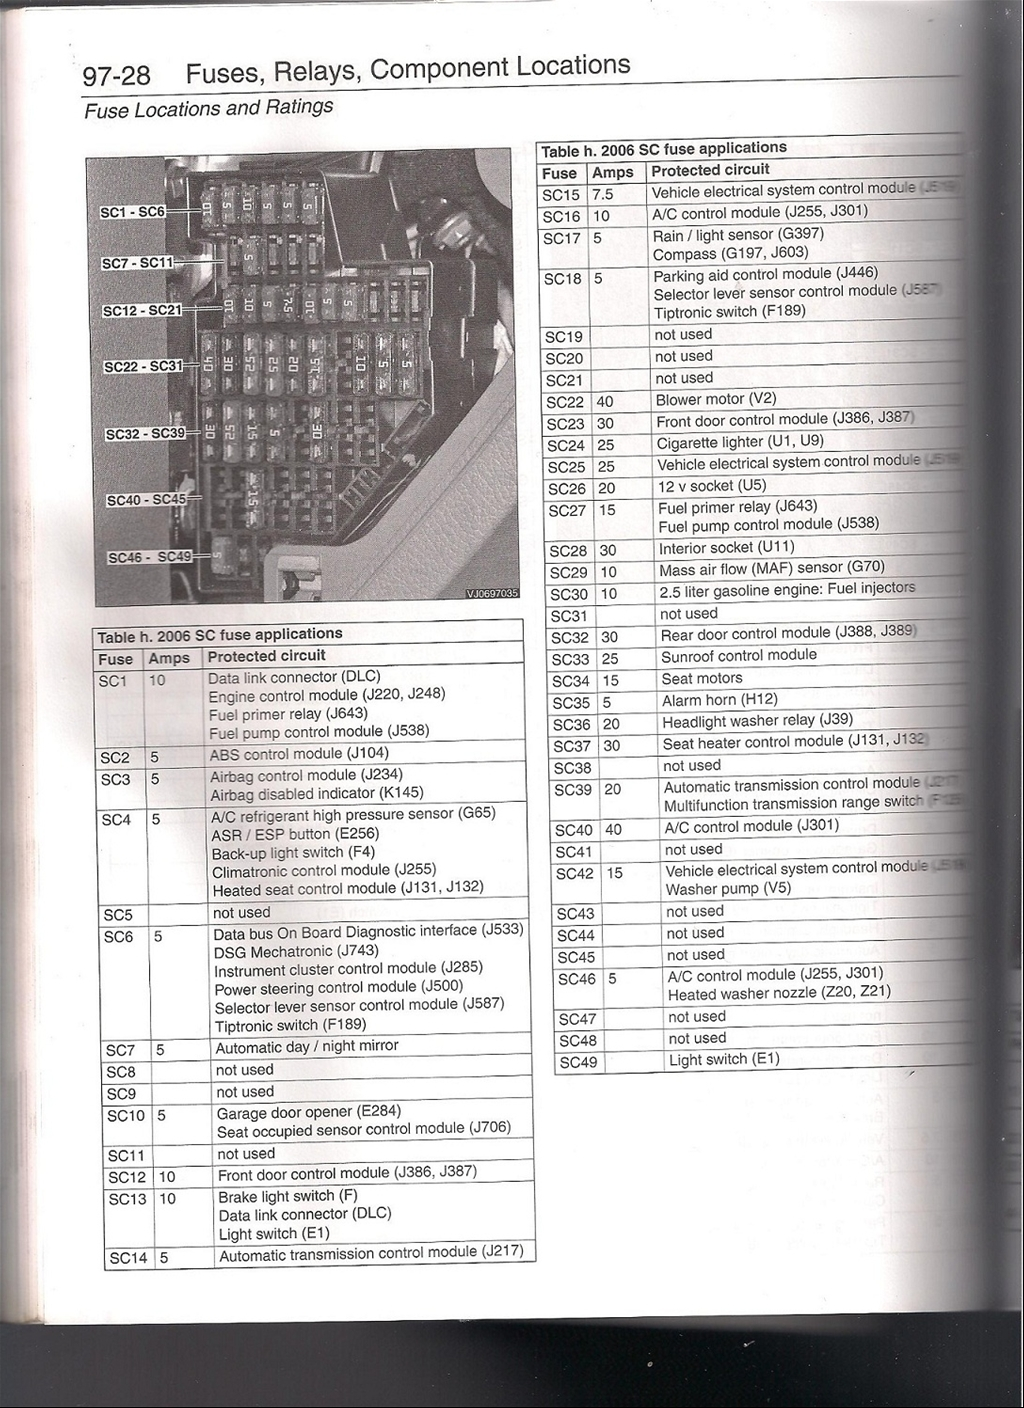 2006 vw jetta fuse box diagram image details 2006 jeep commander interior fuse box diagram 2006 malibu fuse box diagram wiring